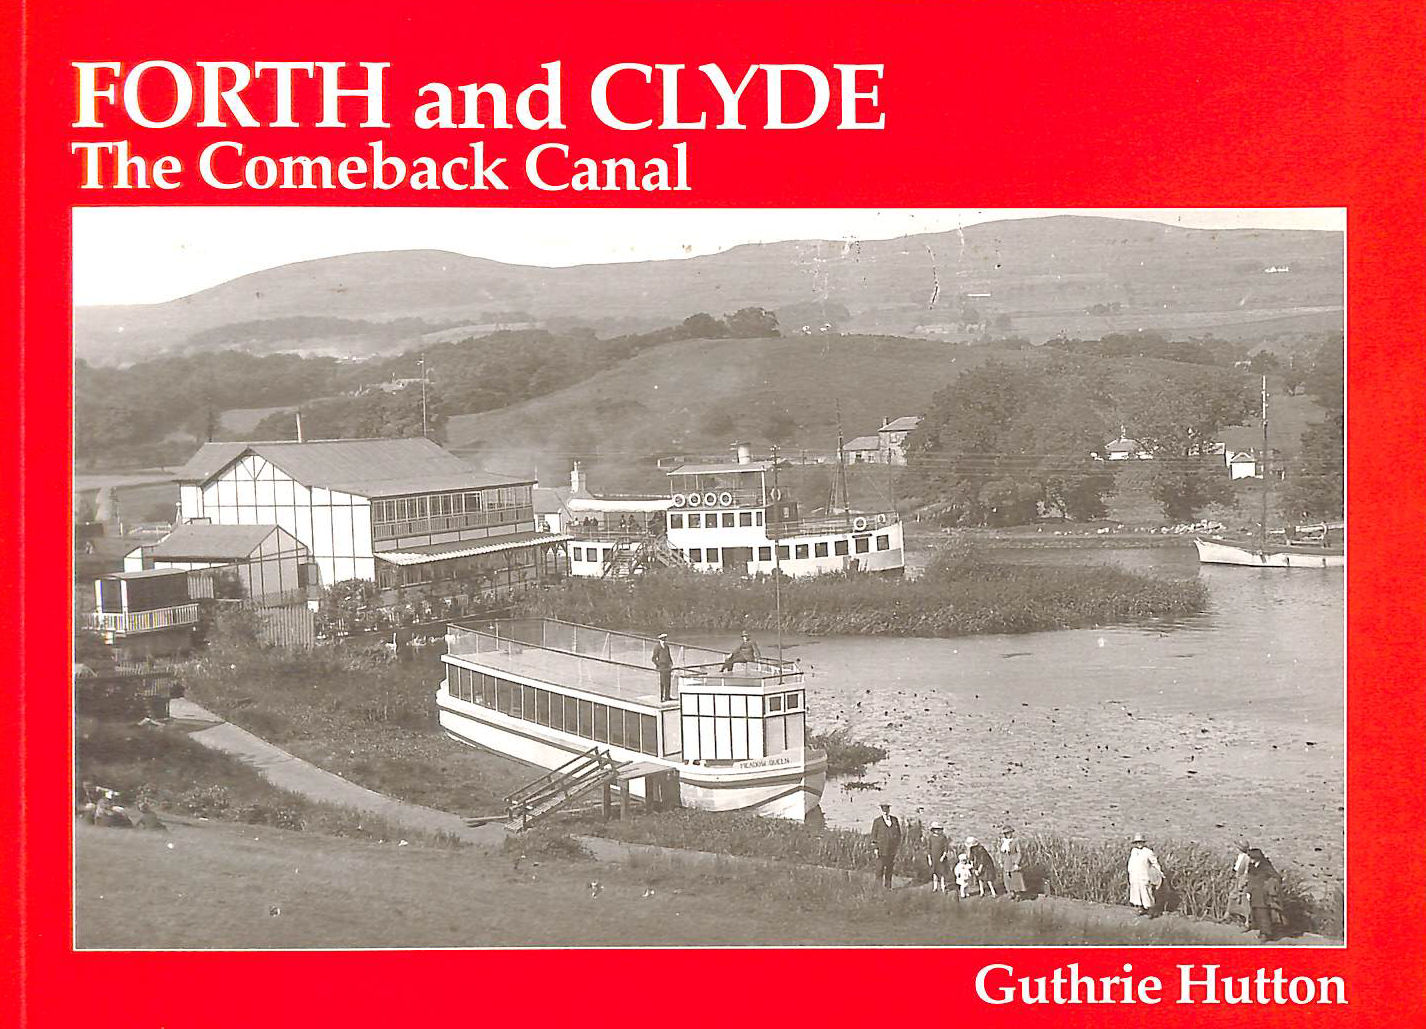 Image for The Forth and Clyde, the Comeback Canal